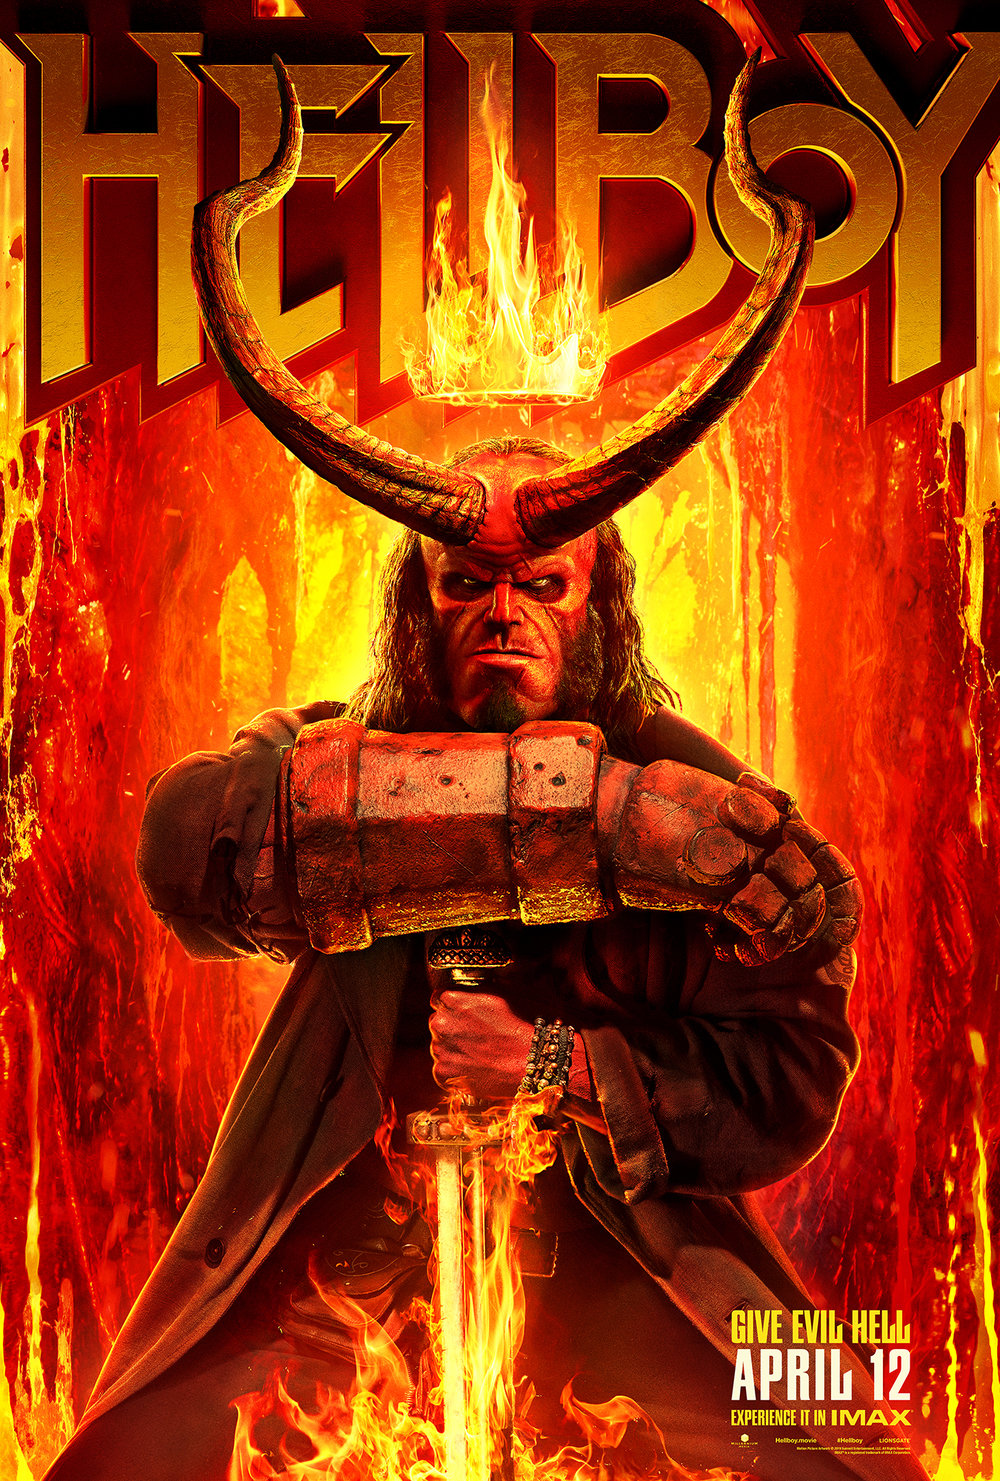 Hellboy_Online_1Sht_Crown_100dpi.jpg